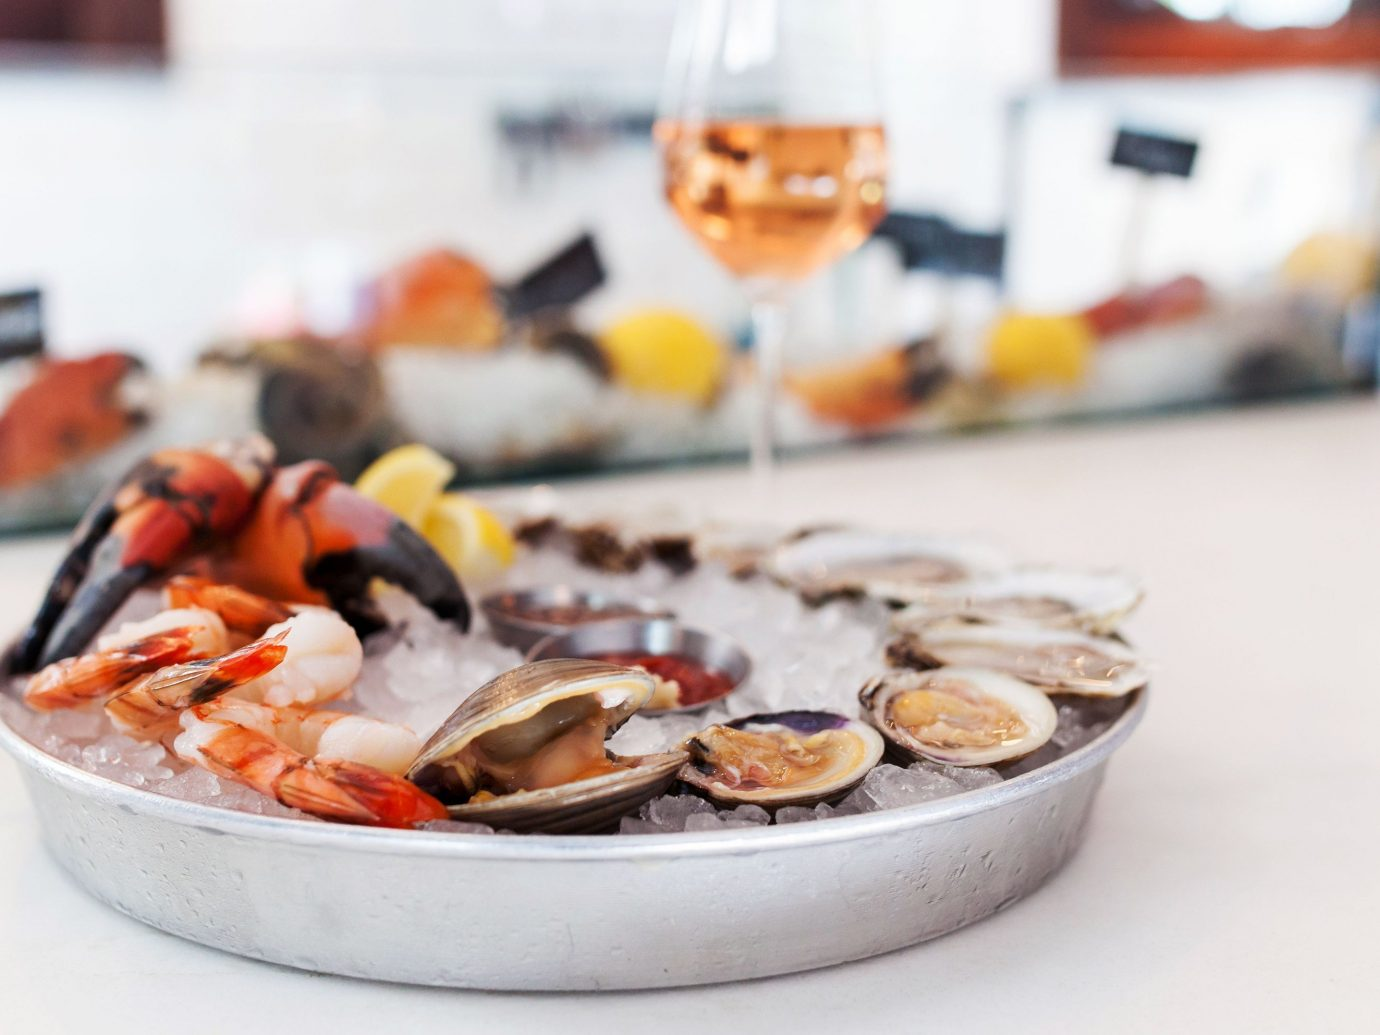 Trip Ideas dish food plate sushi meal breakfast cuisine Seafood sense brunch mussel